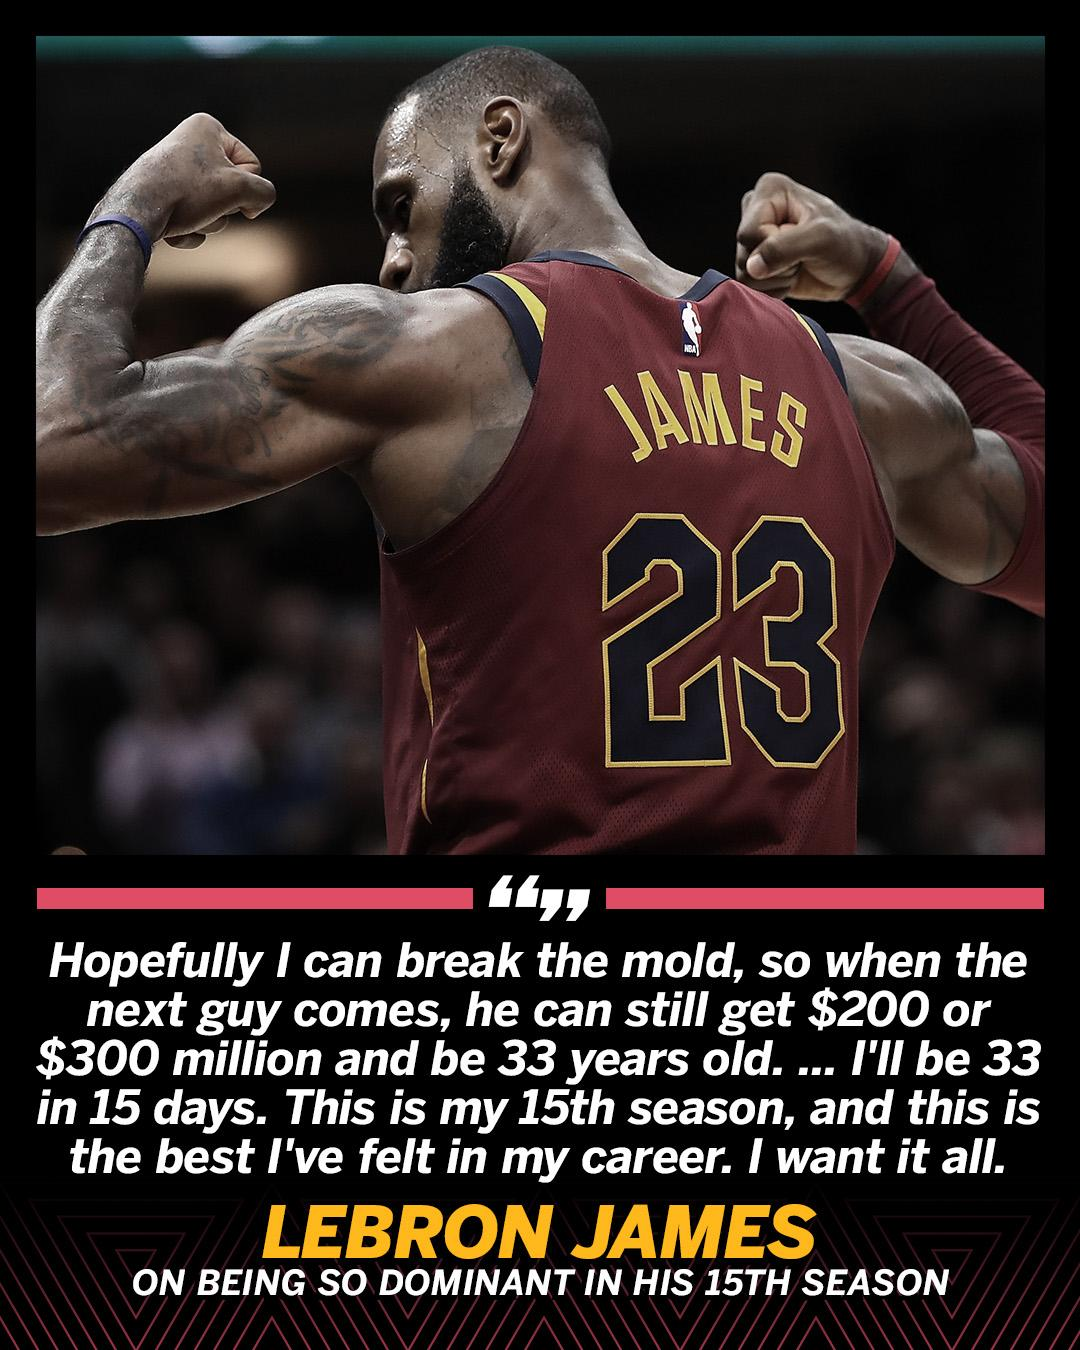 LeBron is not done breaking the mold. https://t.co/jN8HCvsD9p